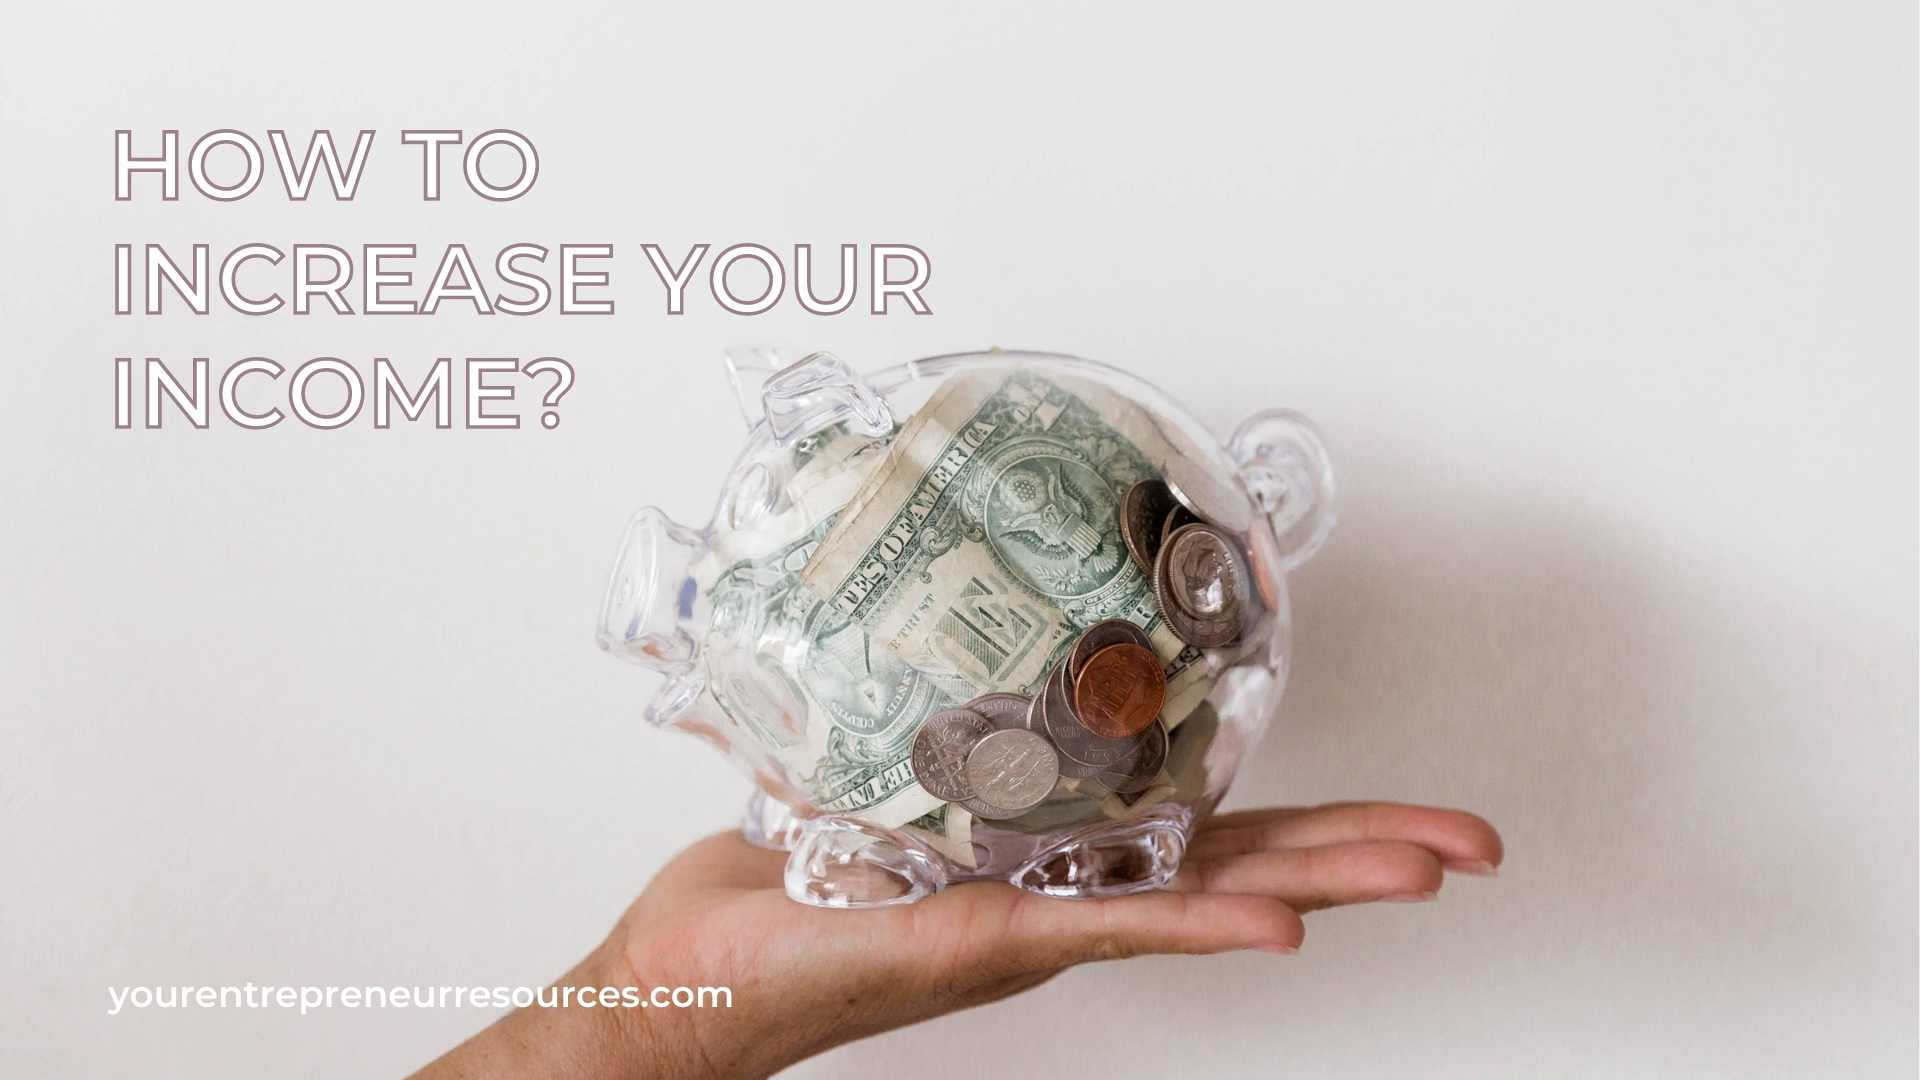 How to increase your income? 7 action steps to make more money online